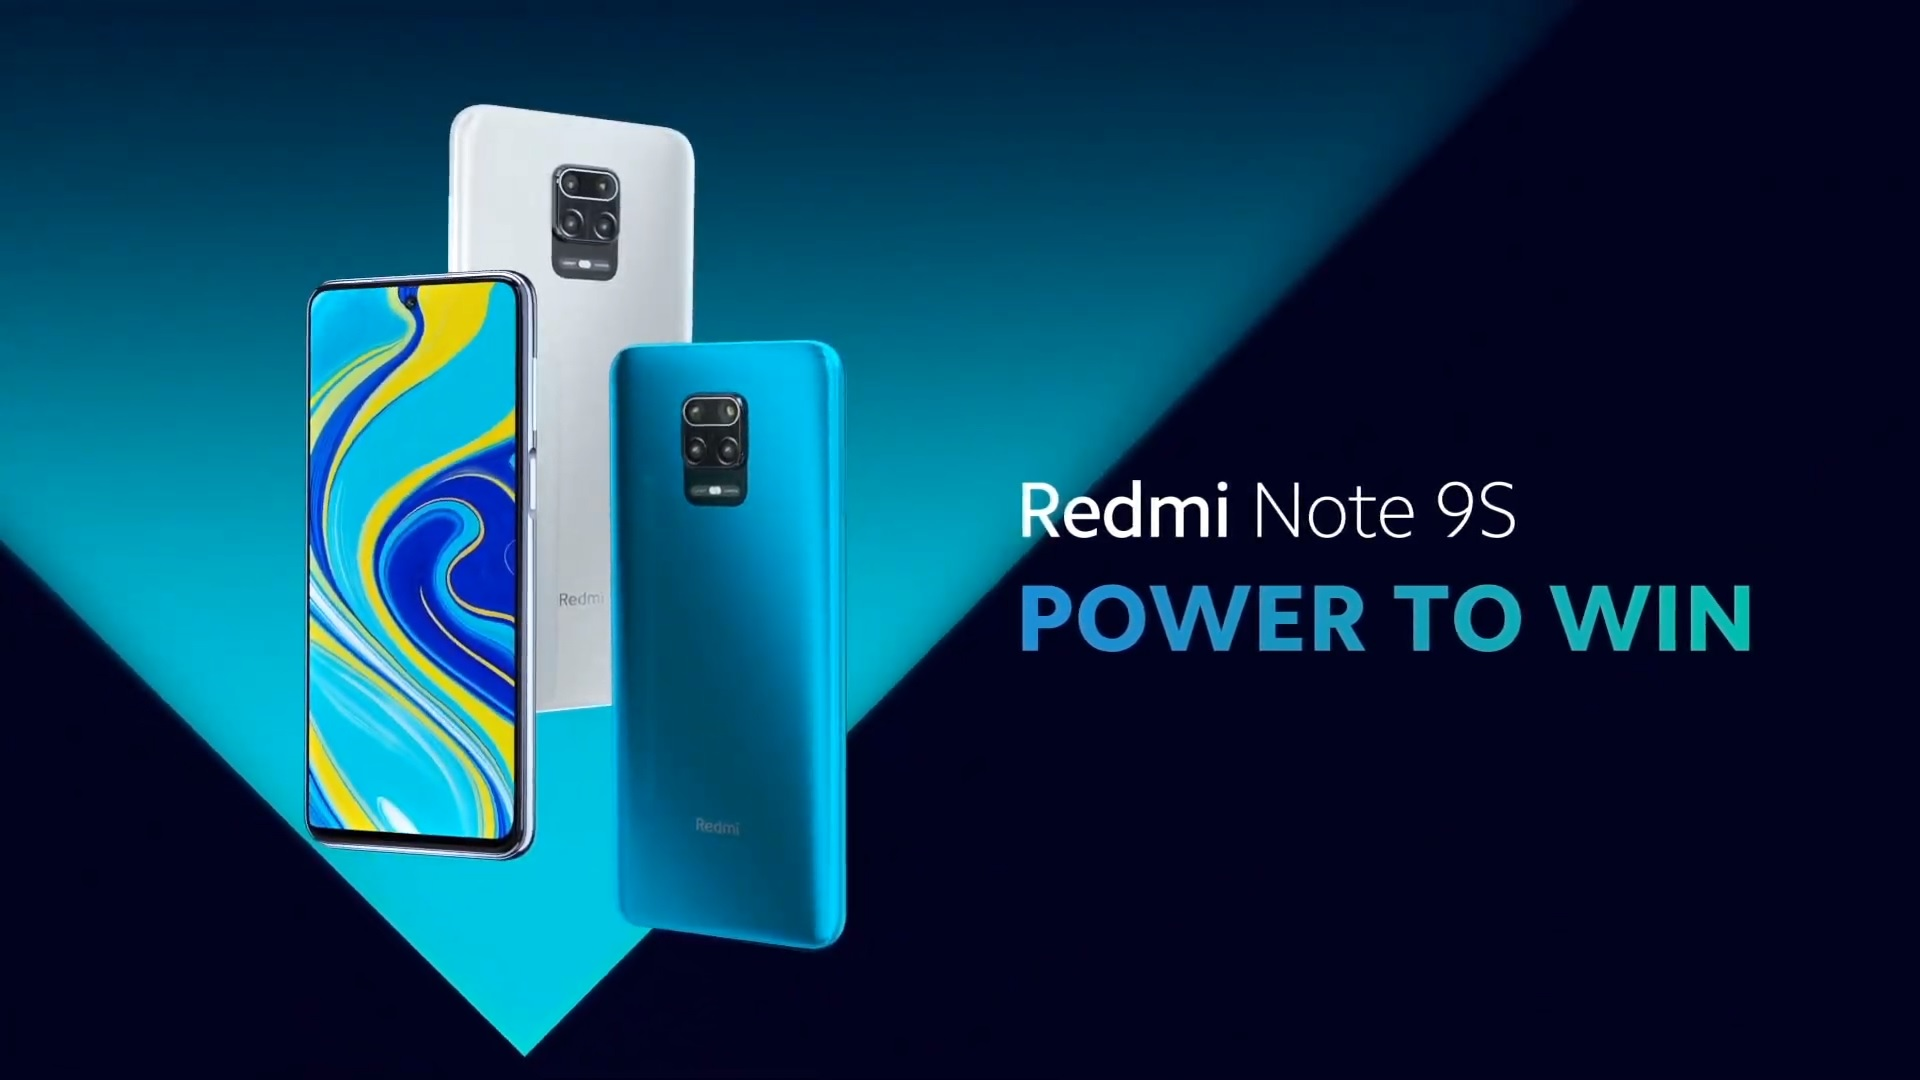 Redmi Note 9S smartphone features